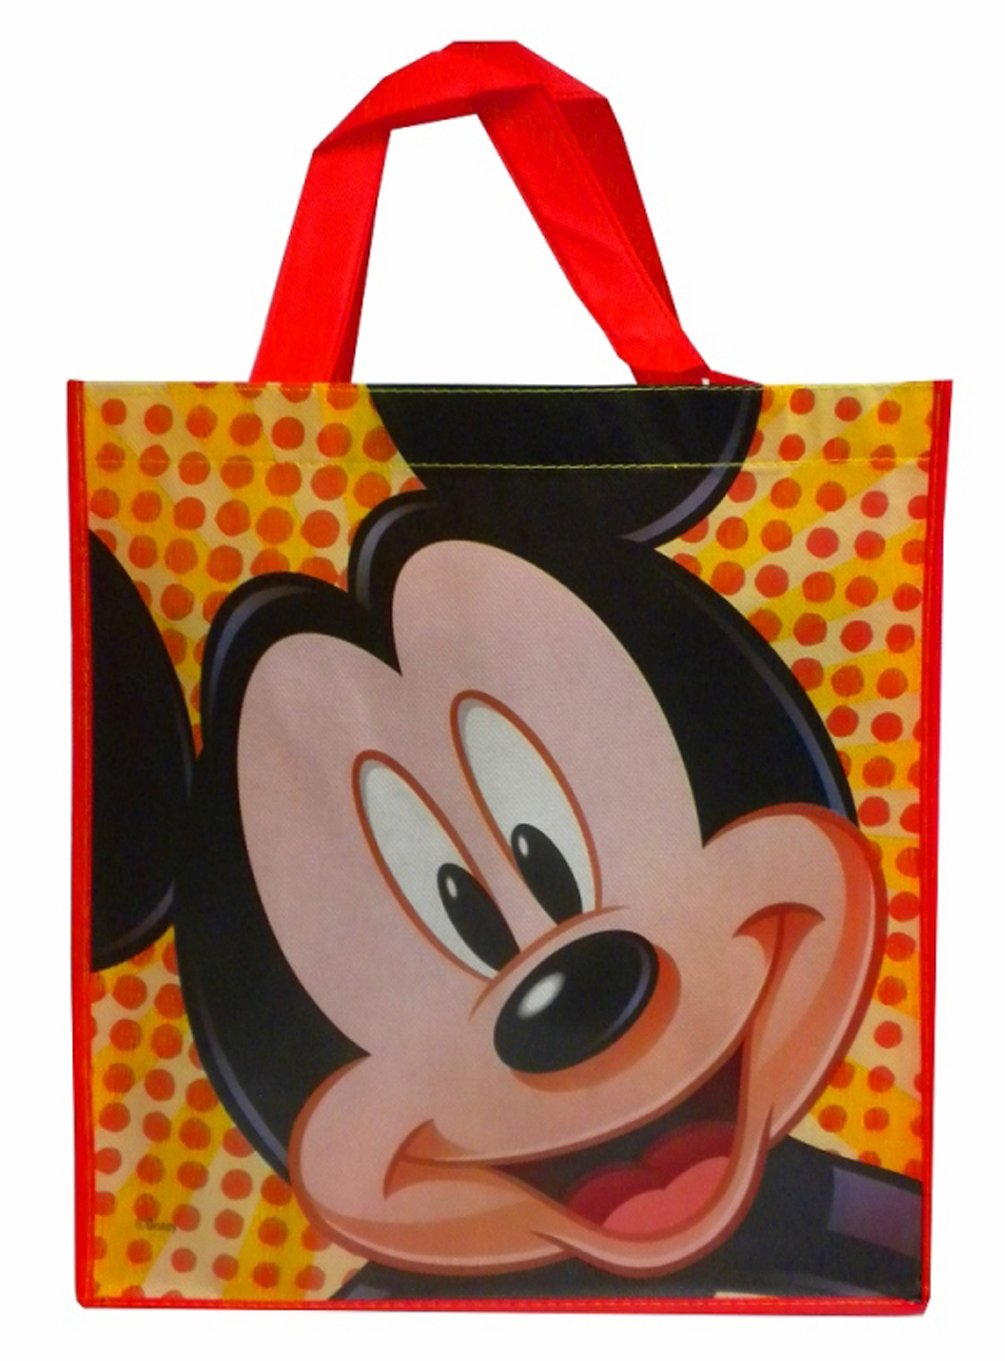 Disney Mickey Mouse Medium Reusable Tote Bag (13.5 X 13.5 X 5.75 Inches)